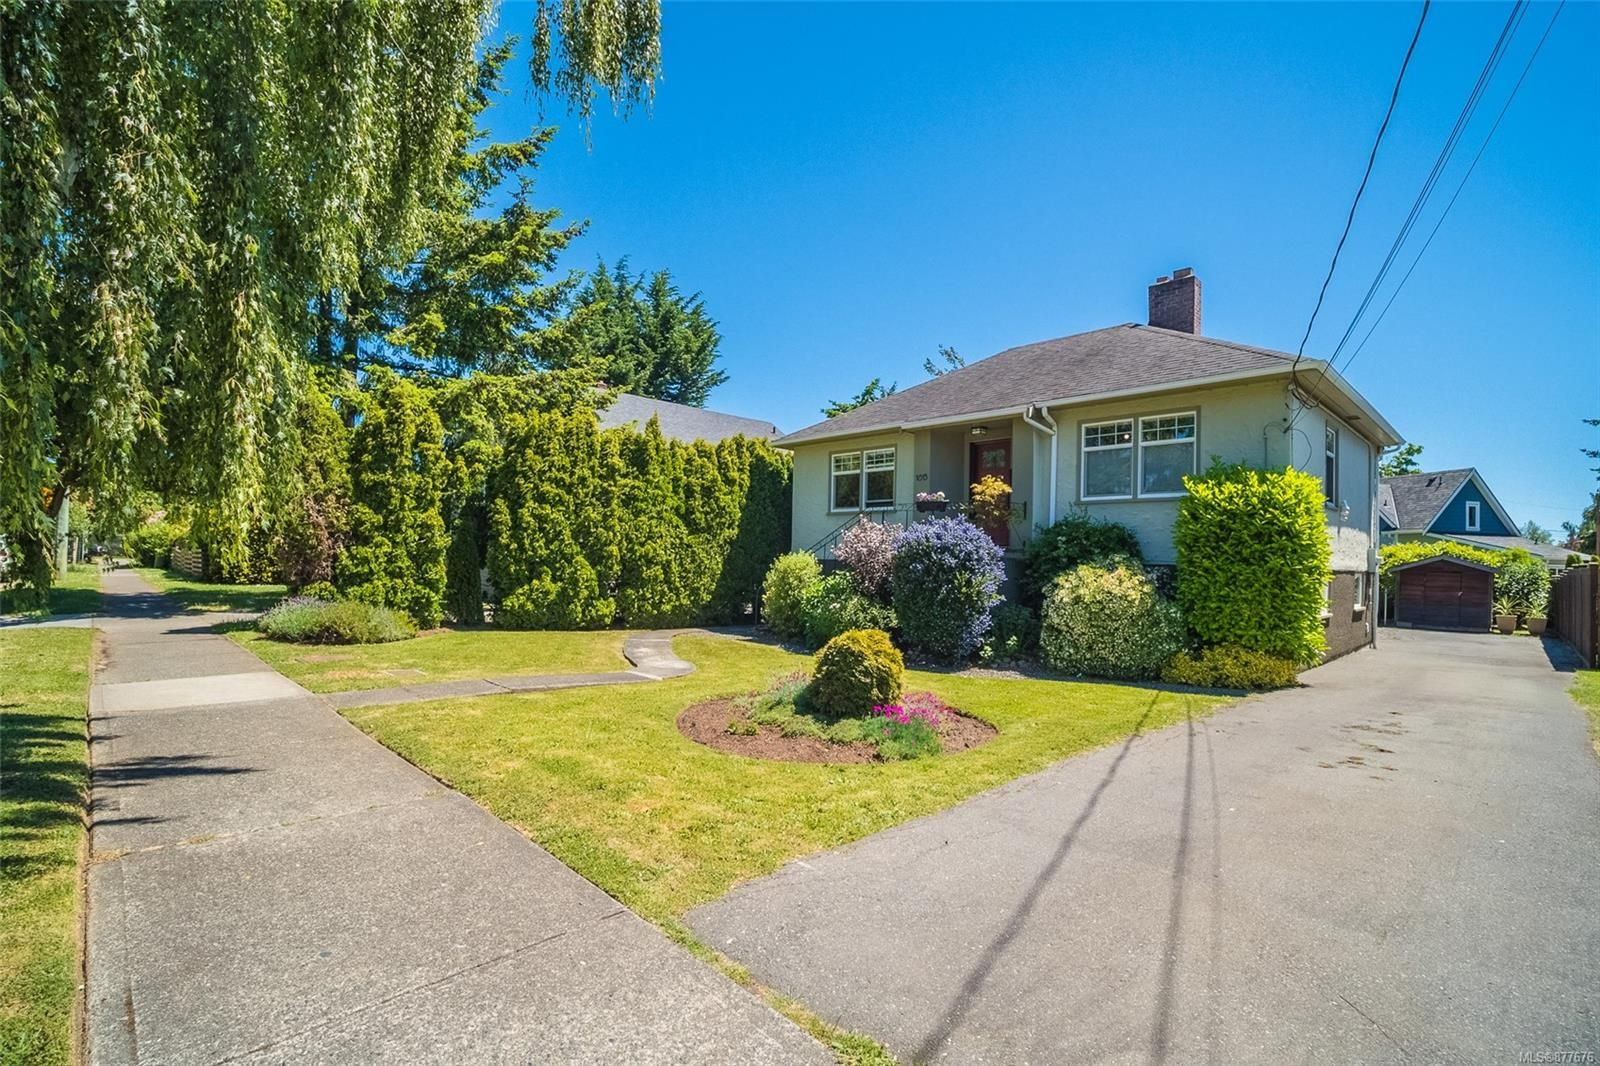 Main Photo: 1615 Myrtle Ave in : Vi Oaklands House for sale (Victoria)  : MLS®# 877676